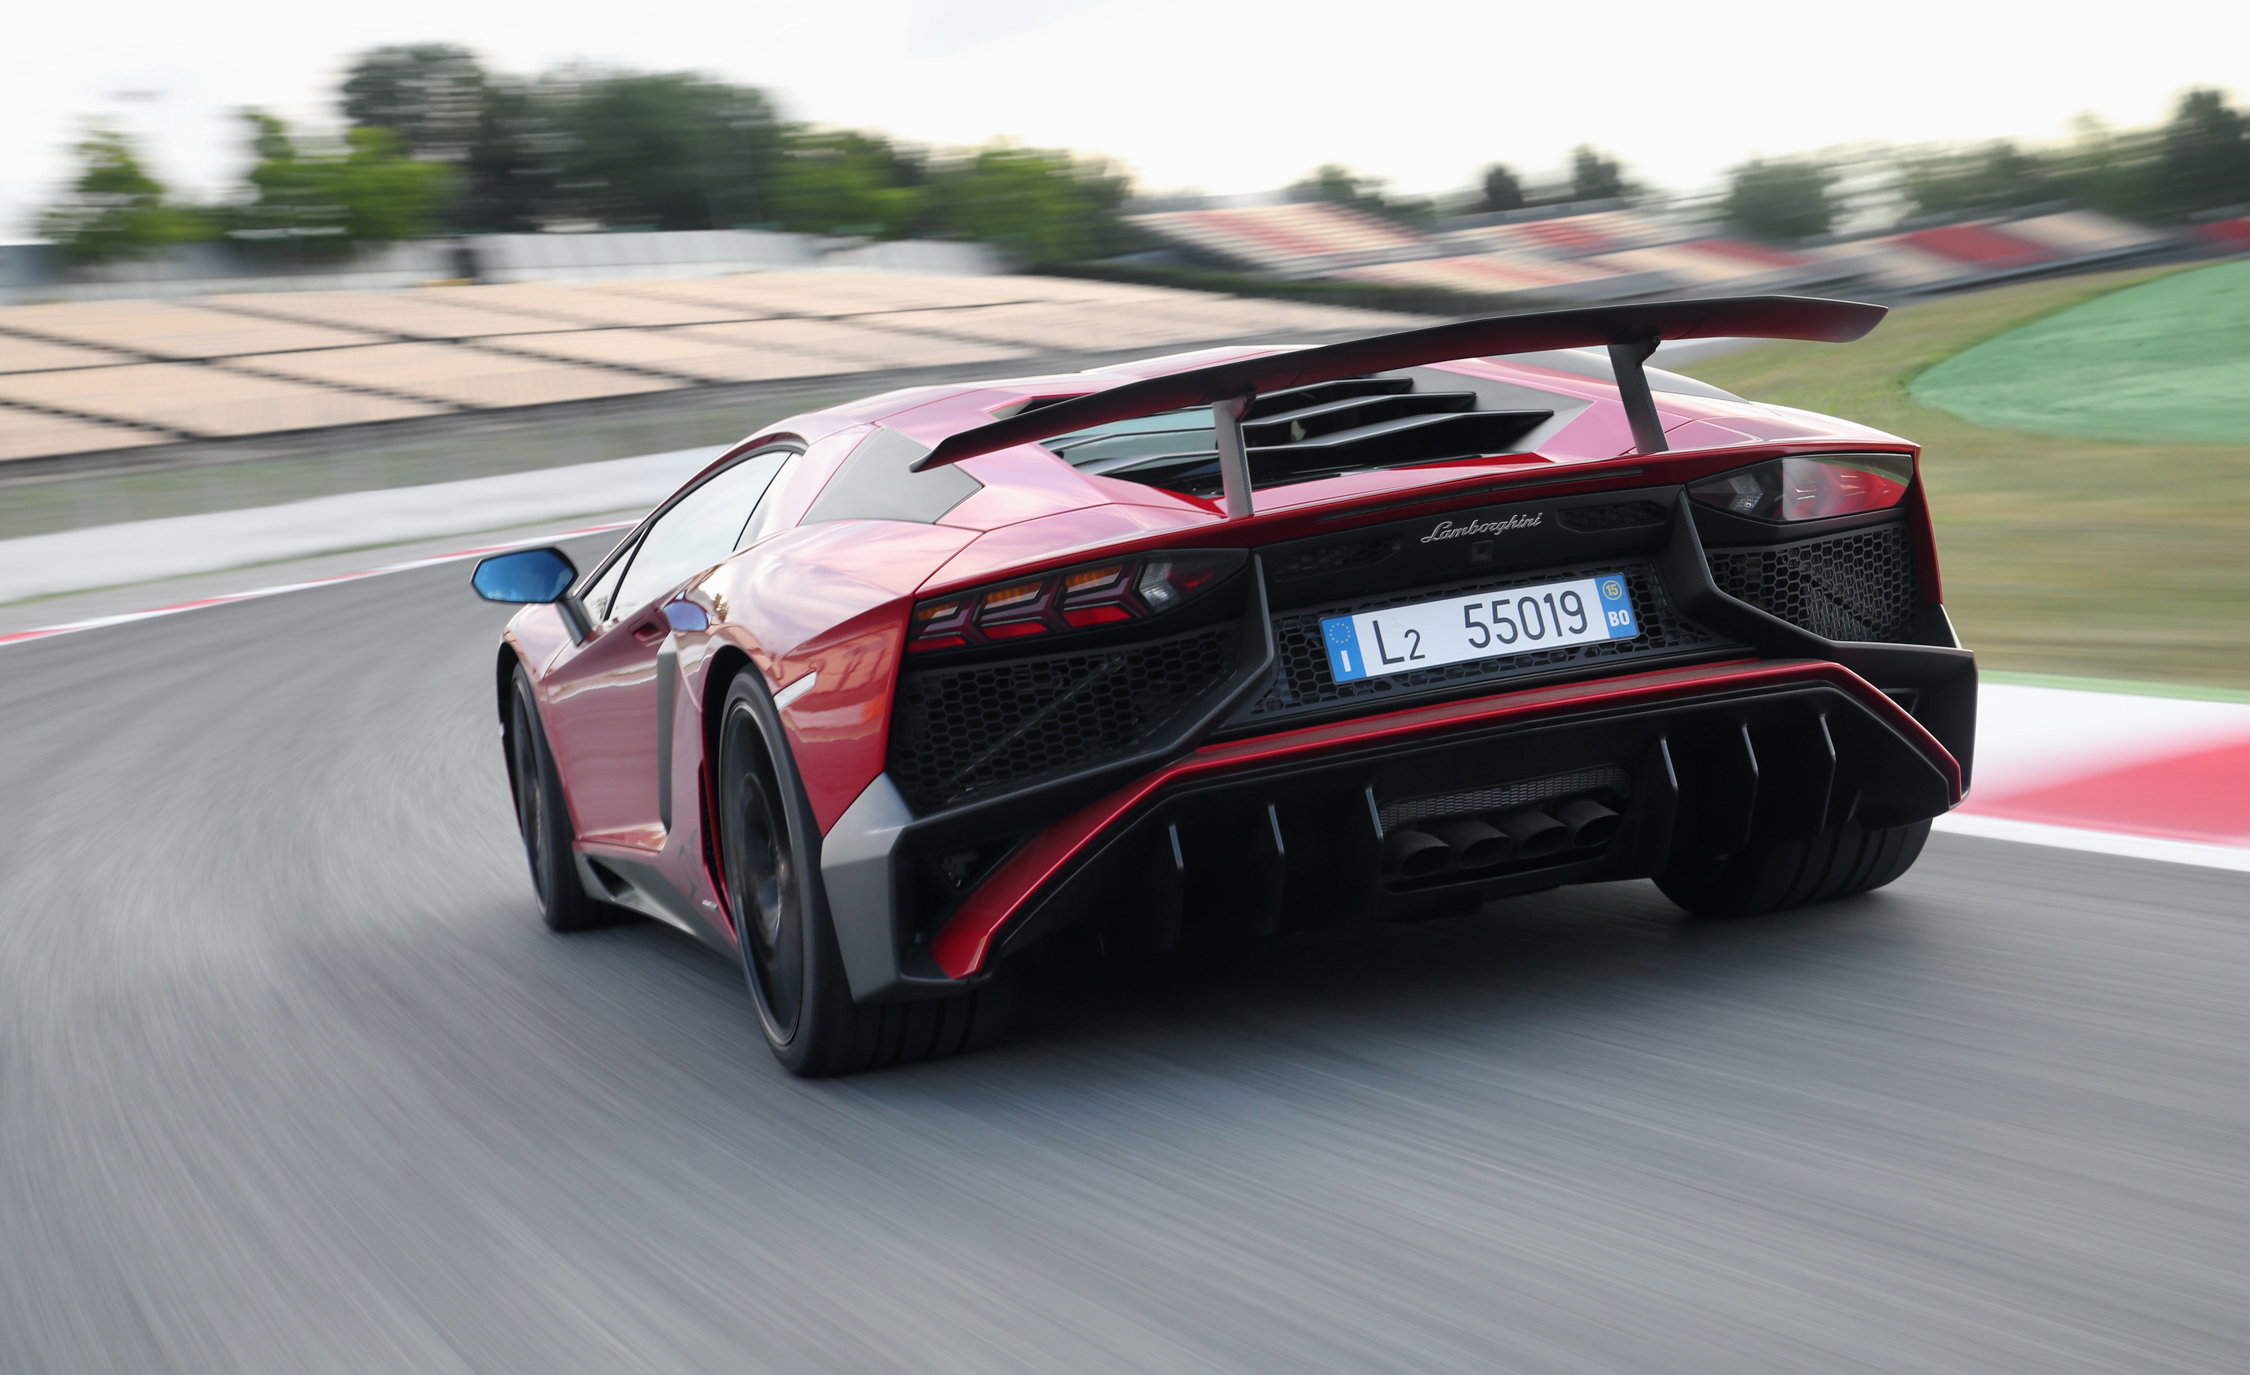 2016 Lamborghini Aventador LP750 4 SV (Photo 37 of 48)